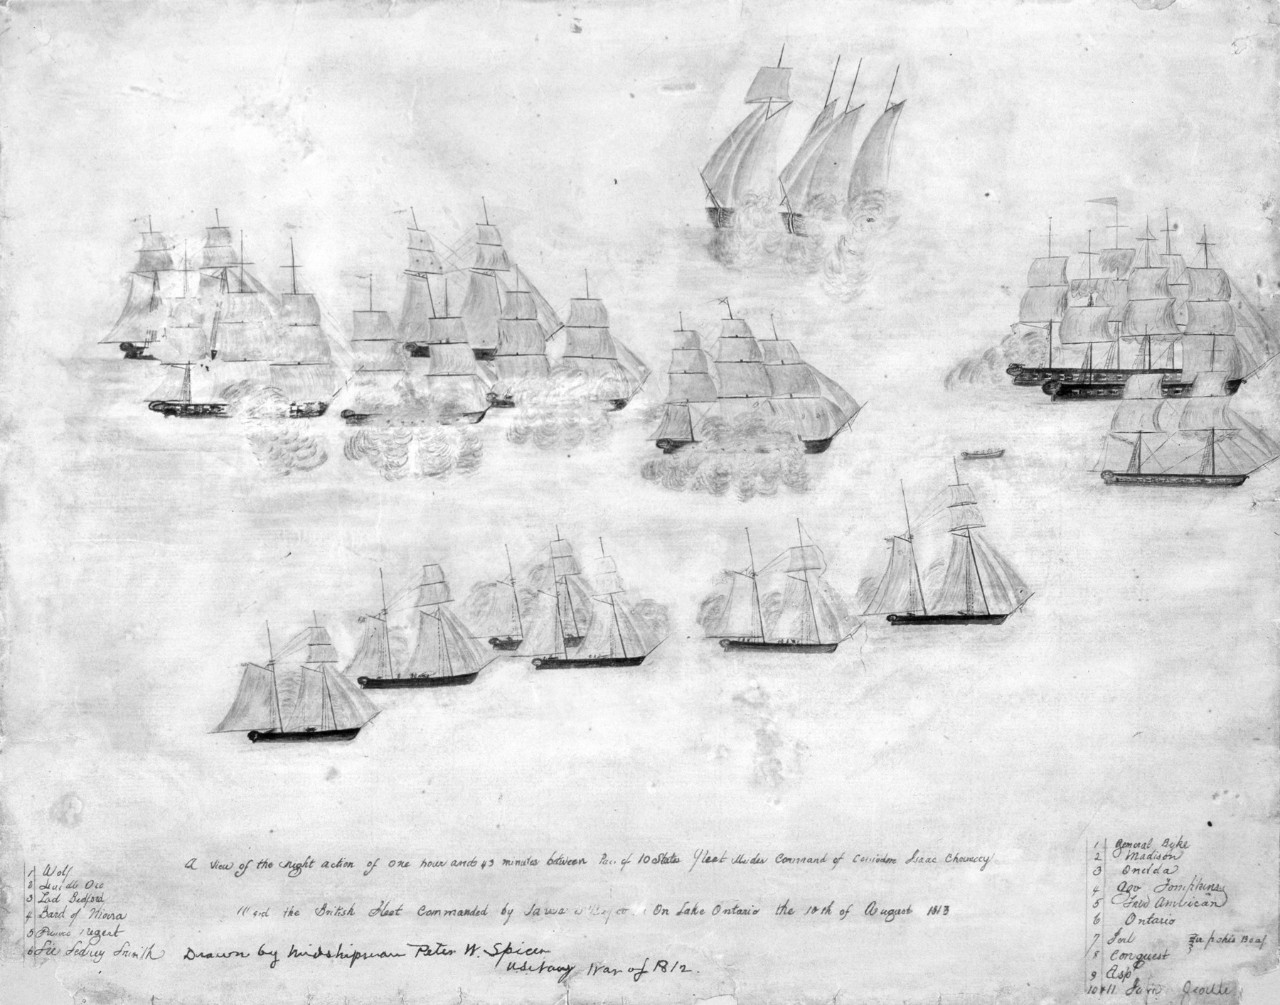 Two lines of ships firing at each other, the ships are coming to a point at the top left, several ships are firing at each other